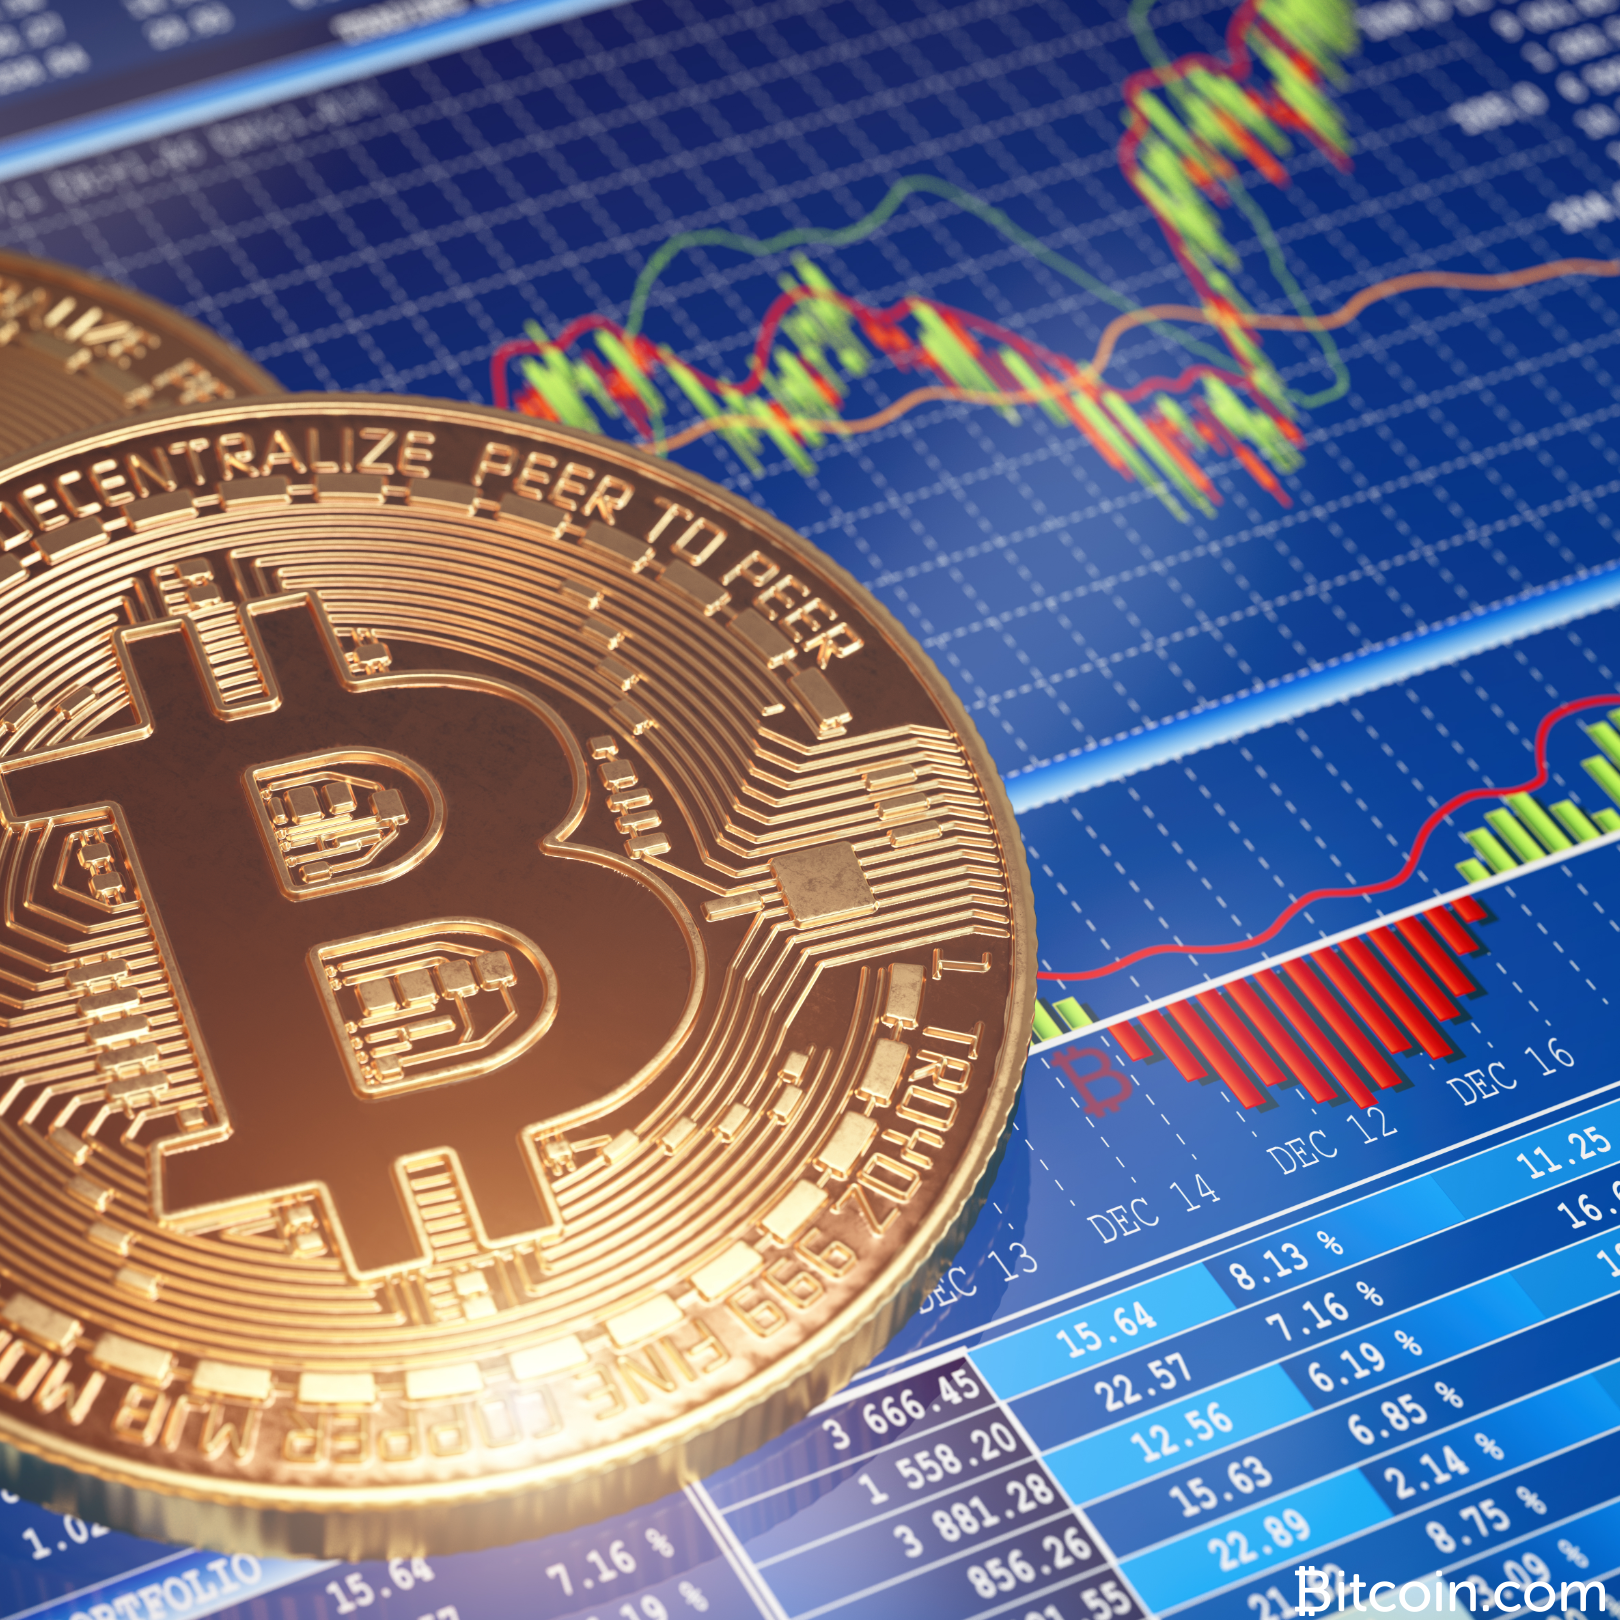 South Korean Court Rules Bitcoin Has Economic Value